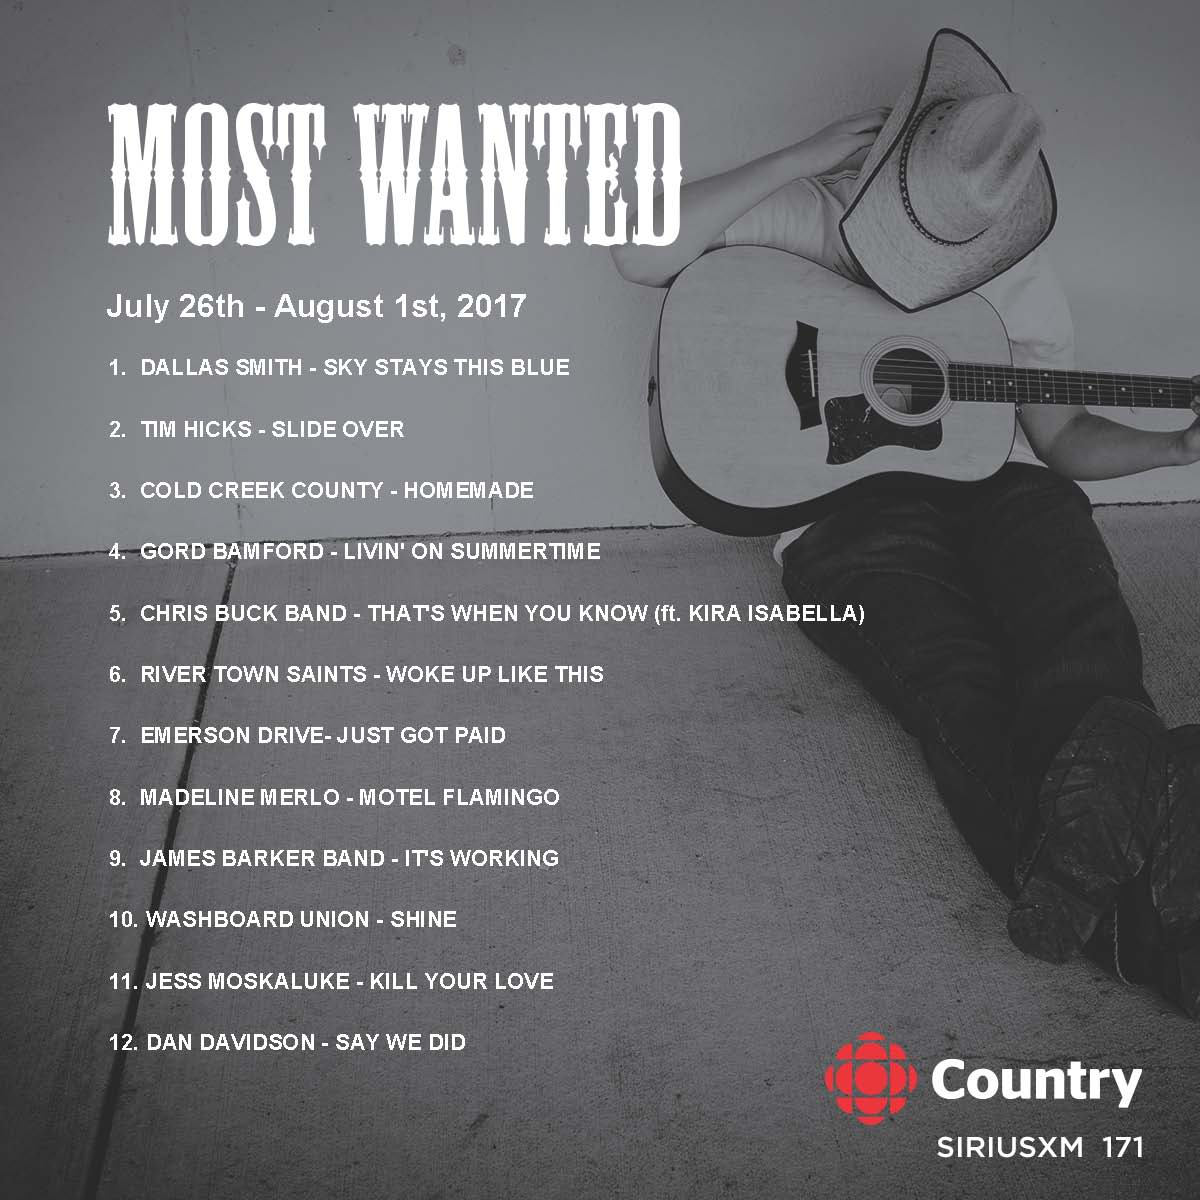 .@dallassmith takes over #MostWanted #1 with hot tunes from @washboardunion @jessmoskaluke @jamesbarkerband @ItsDanDavidson #Can  #Country<br>http://pic.twitter.com/Tq54V6FK9a